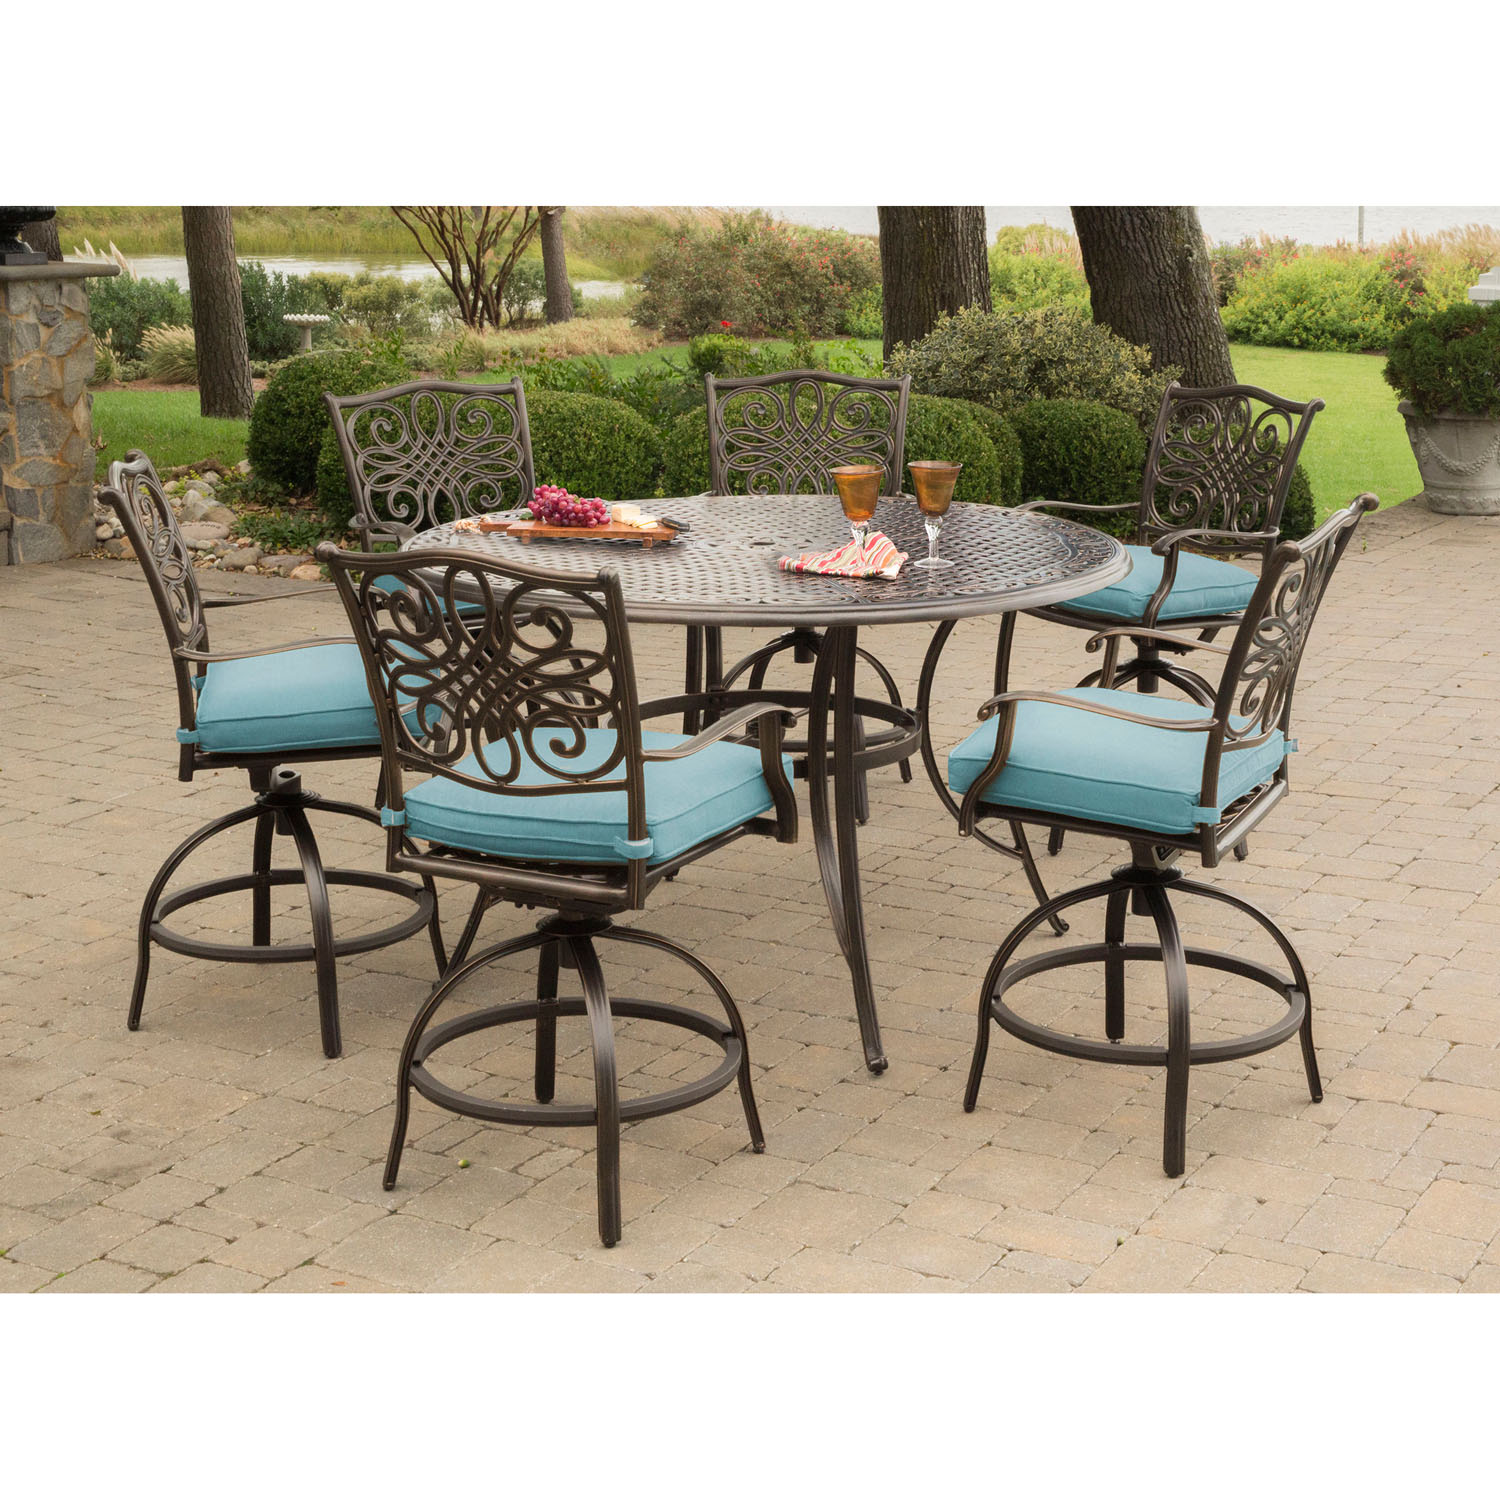 Hanover traditions 7 piece high dining set in blue with 56 for High top dining set